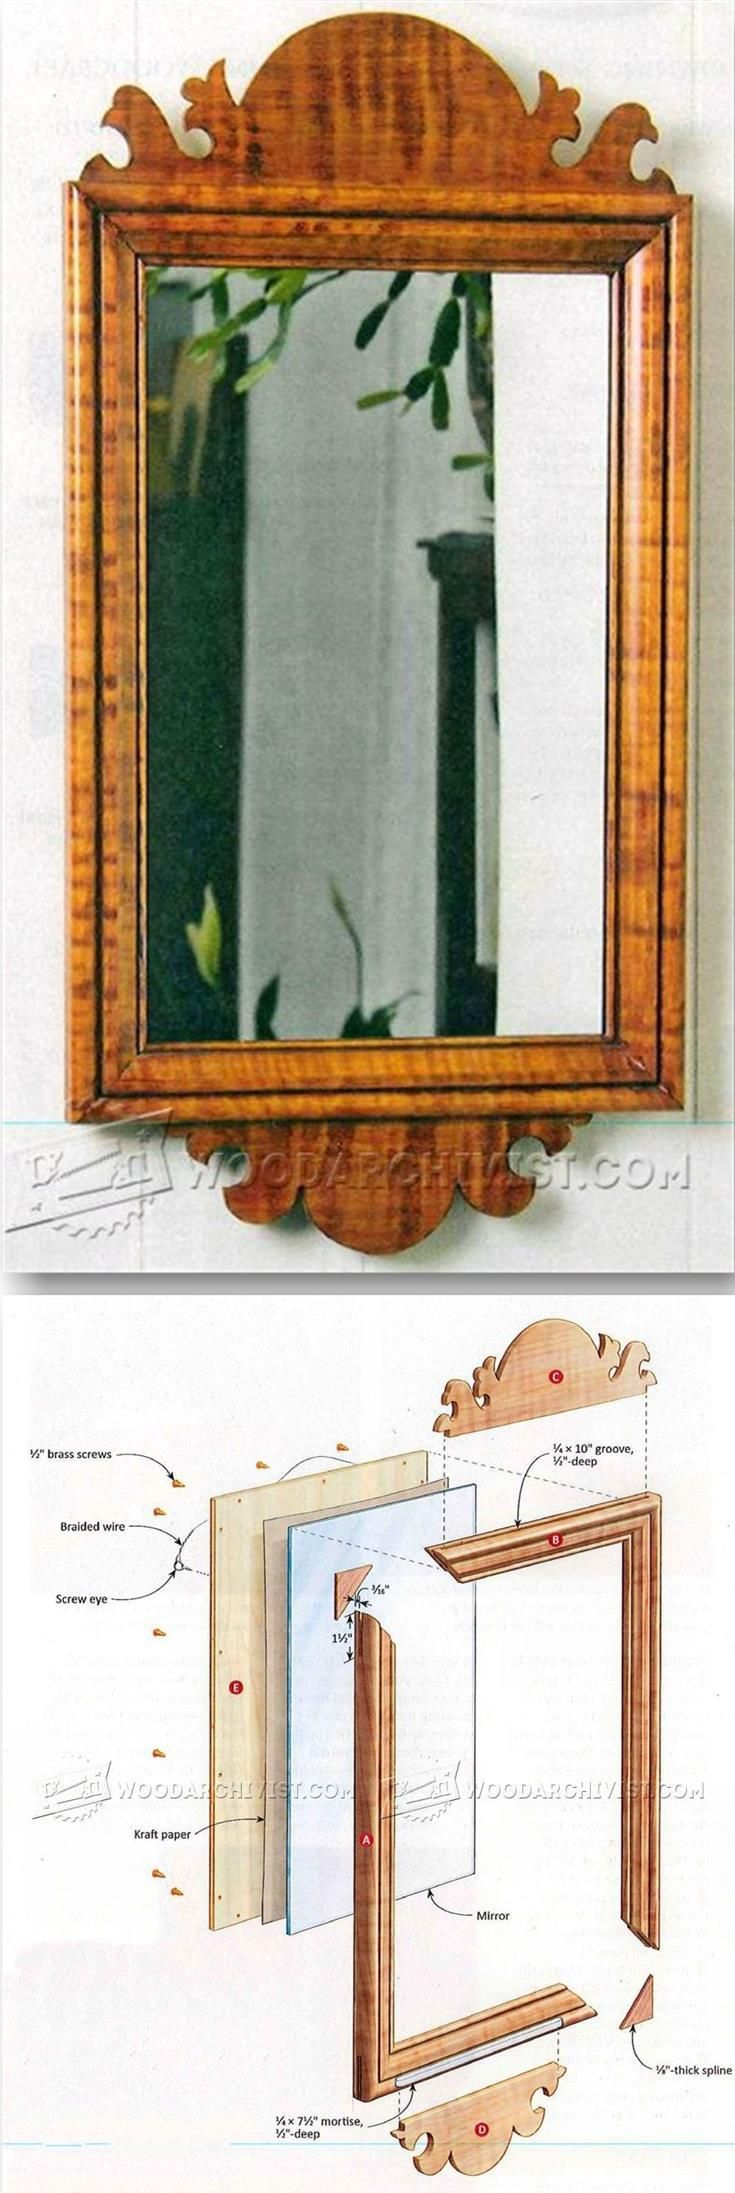 Country Wall Mirror Plans - Woodworking Plans and Projects | WoodArchivist.com